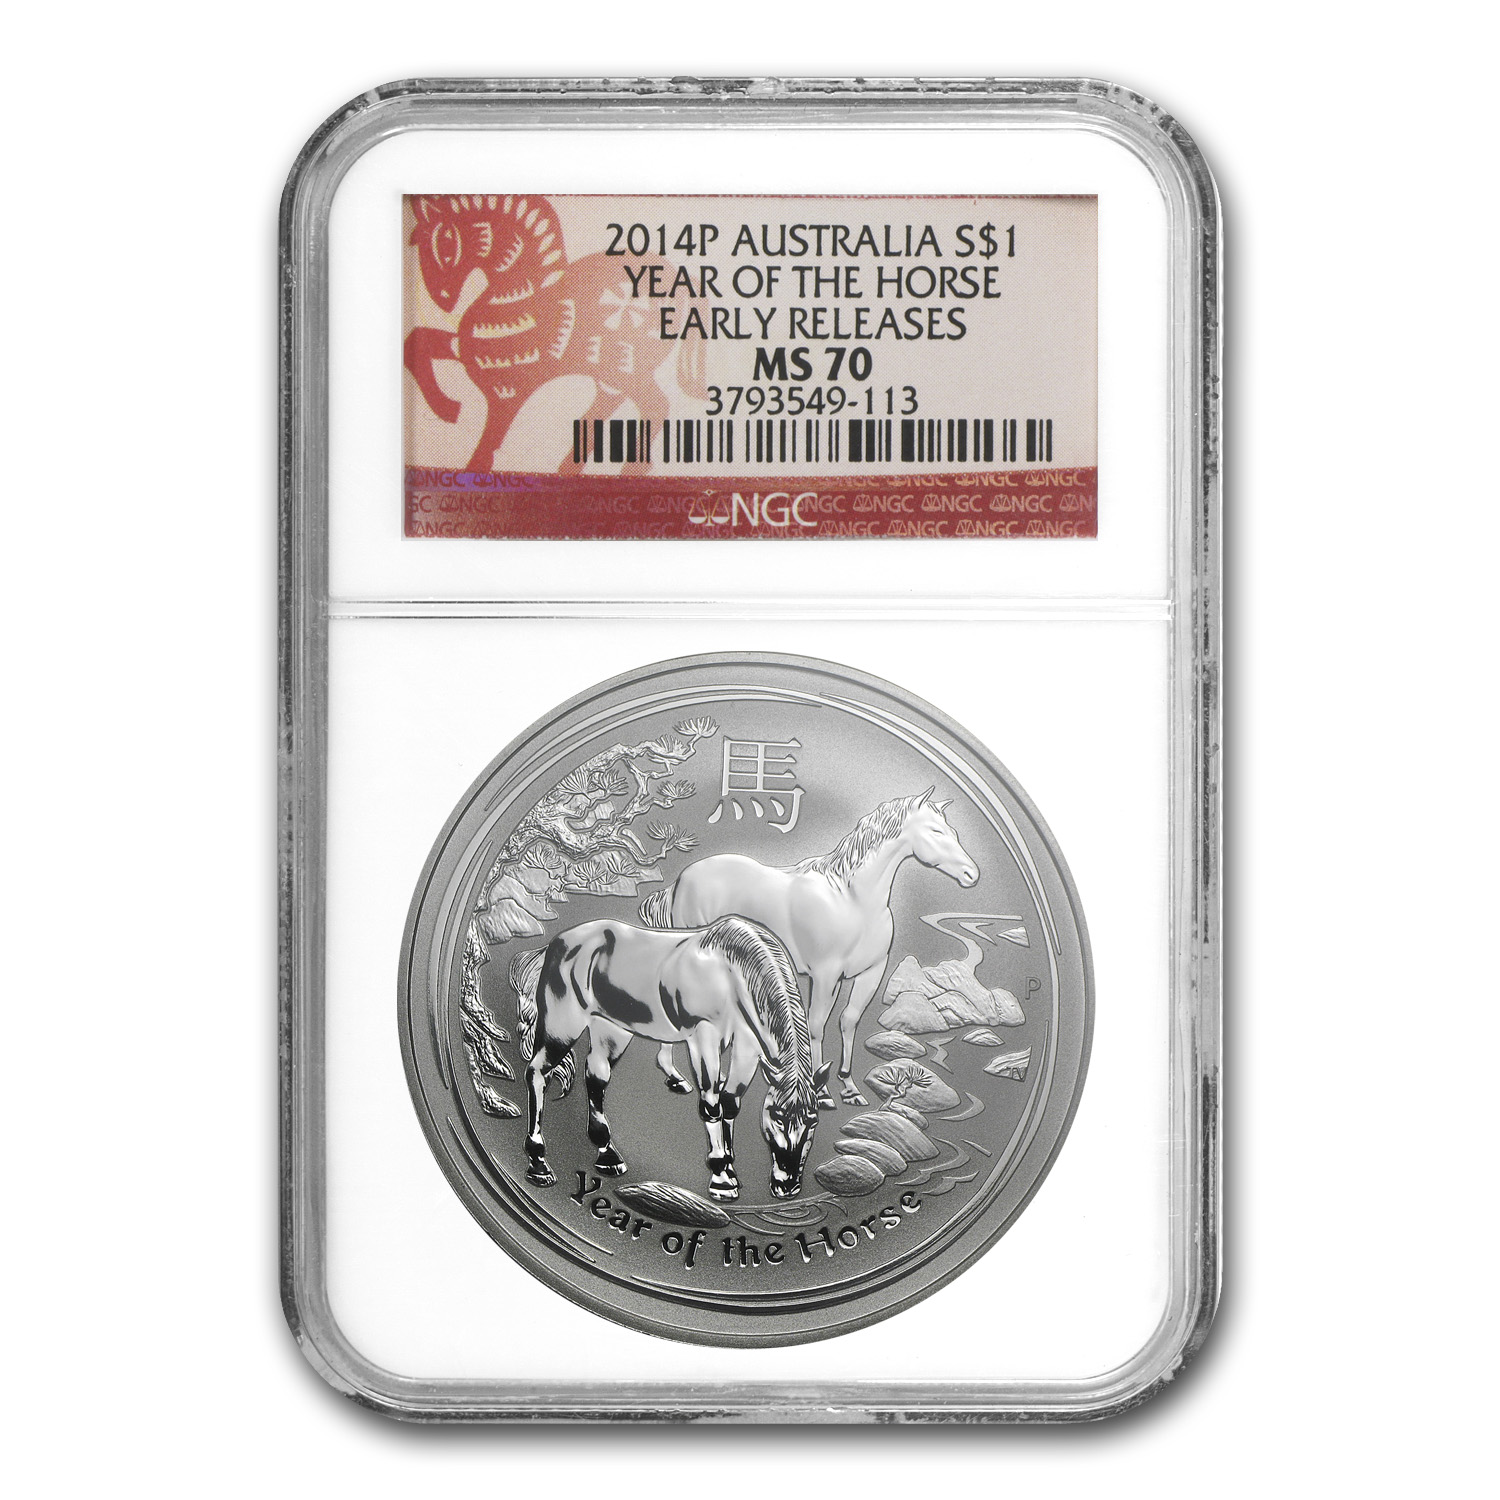 2014 1 oz Silver Year of the Horse Coin (SII) MS-70 (ER) NGC